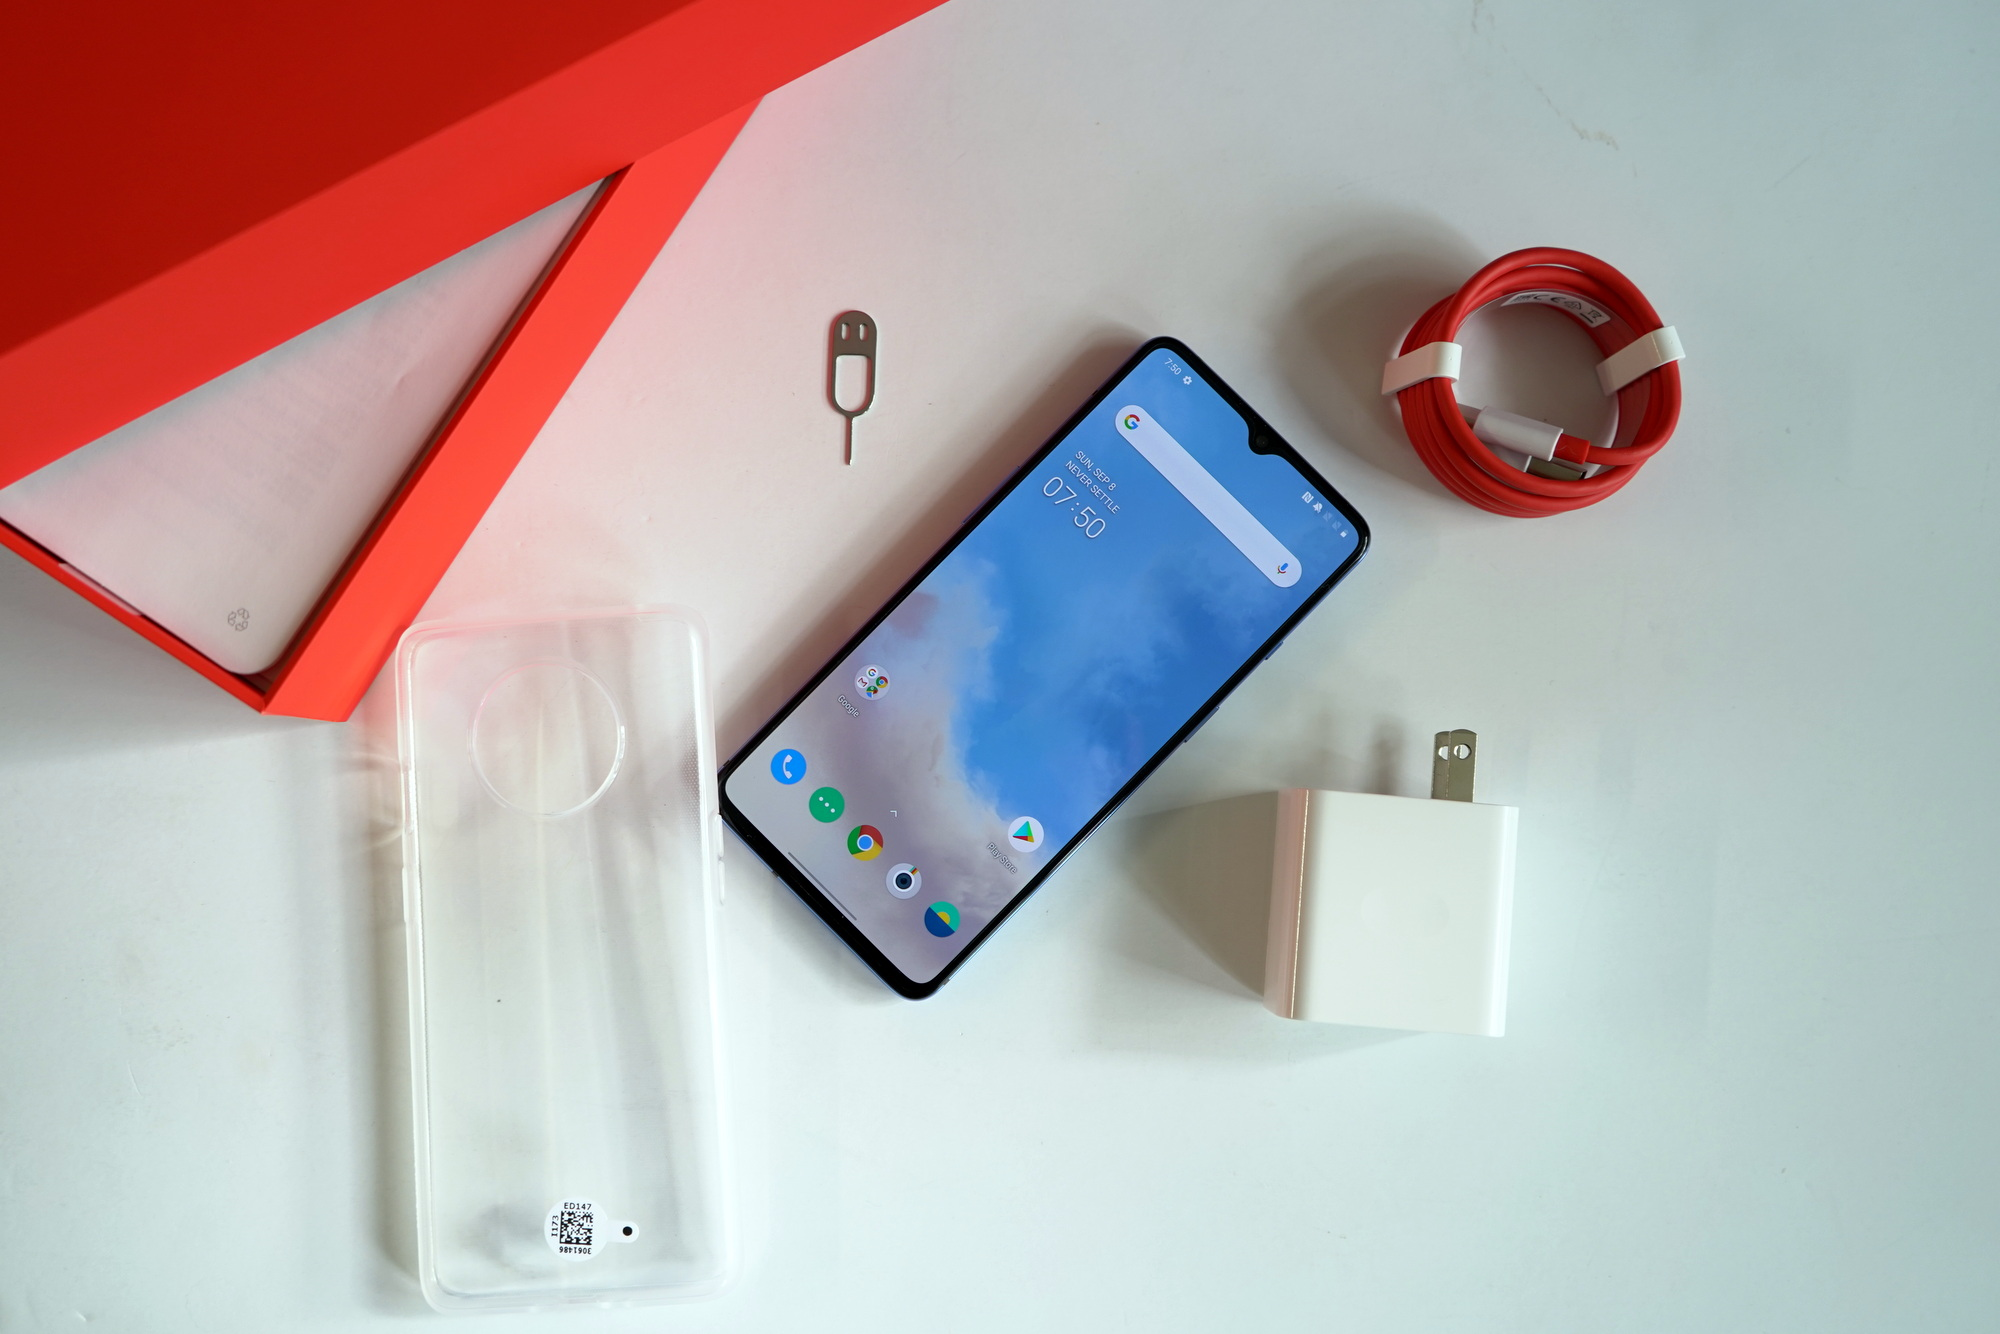 OnePlus devices are swapping left and right audio channels when connecting  headphones